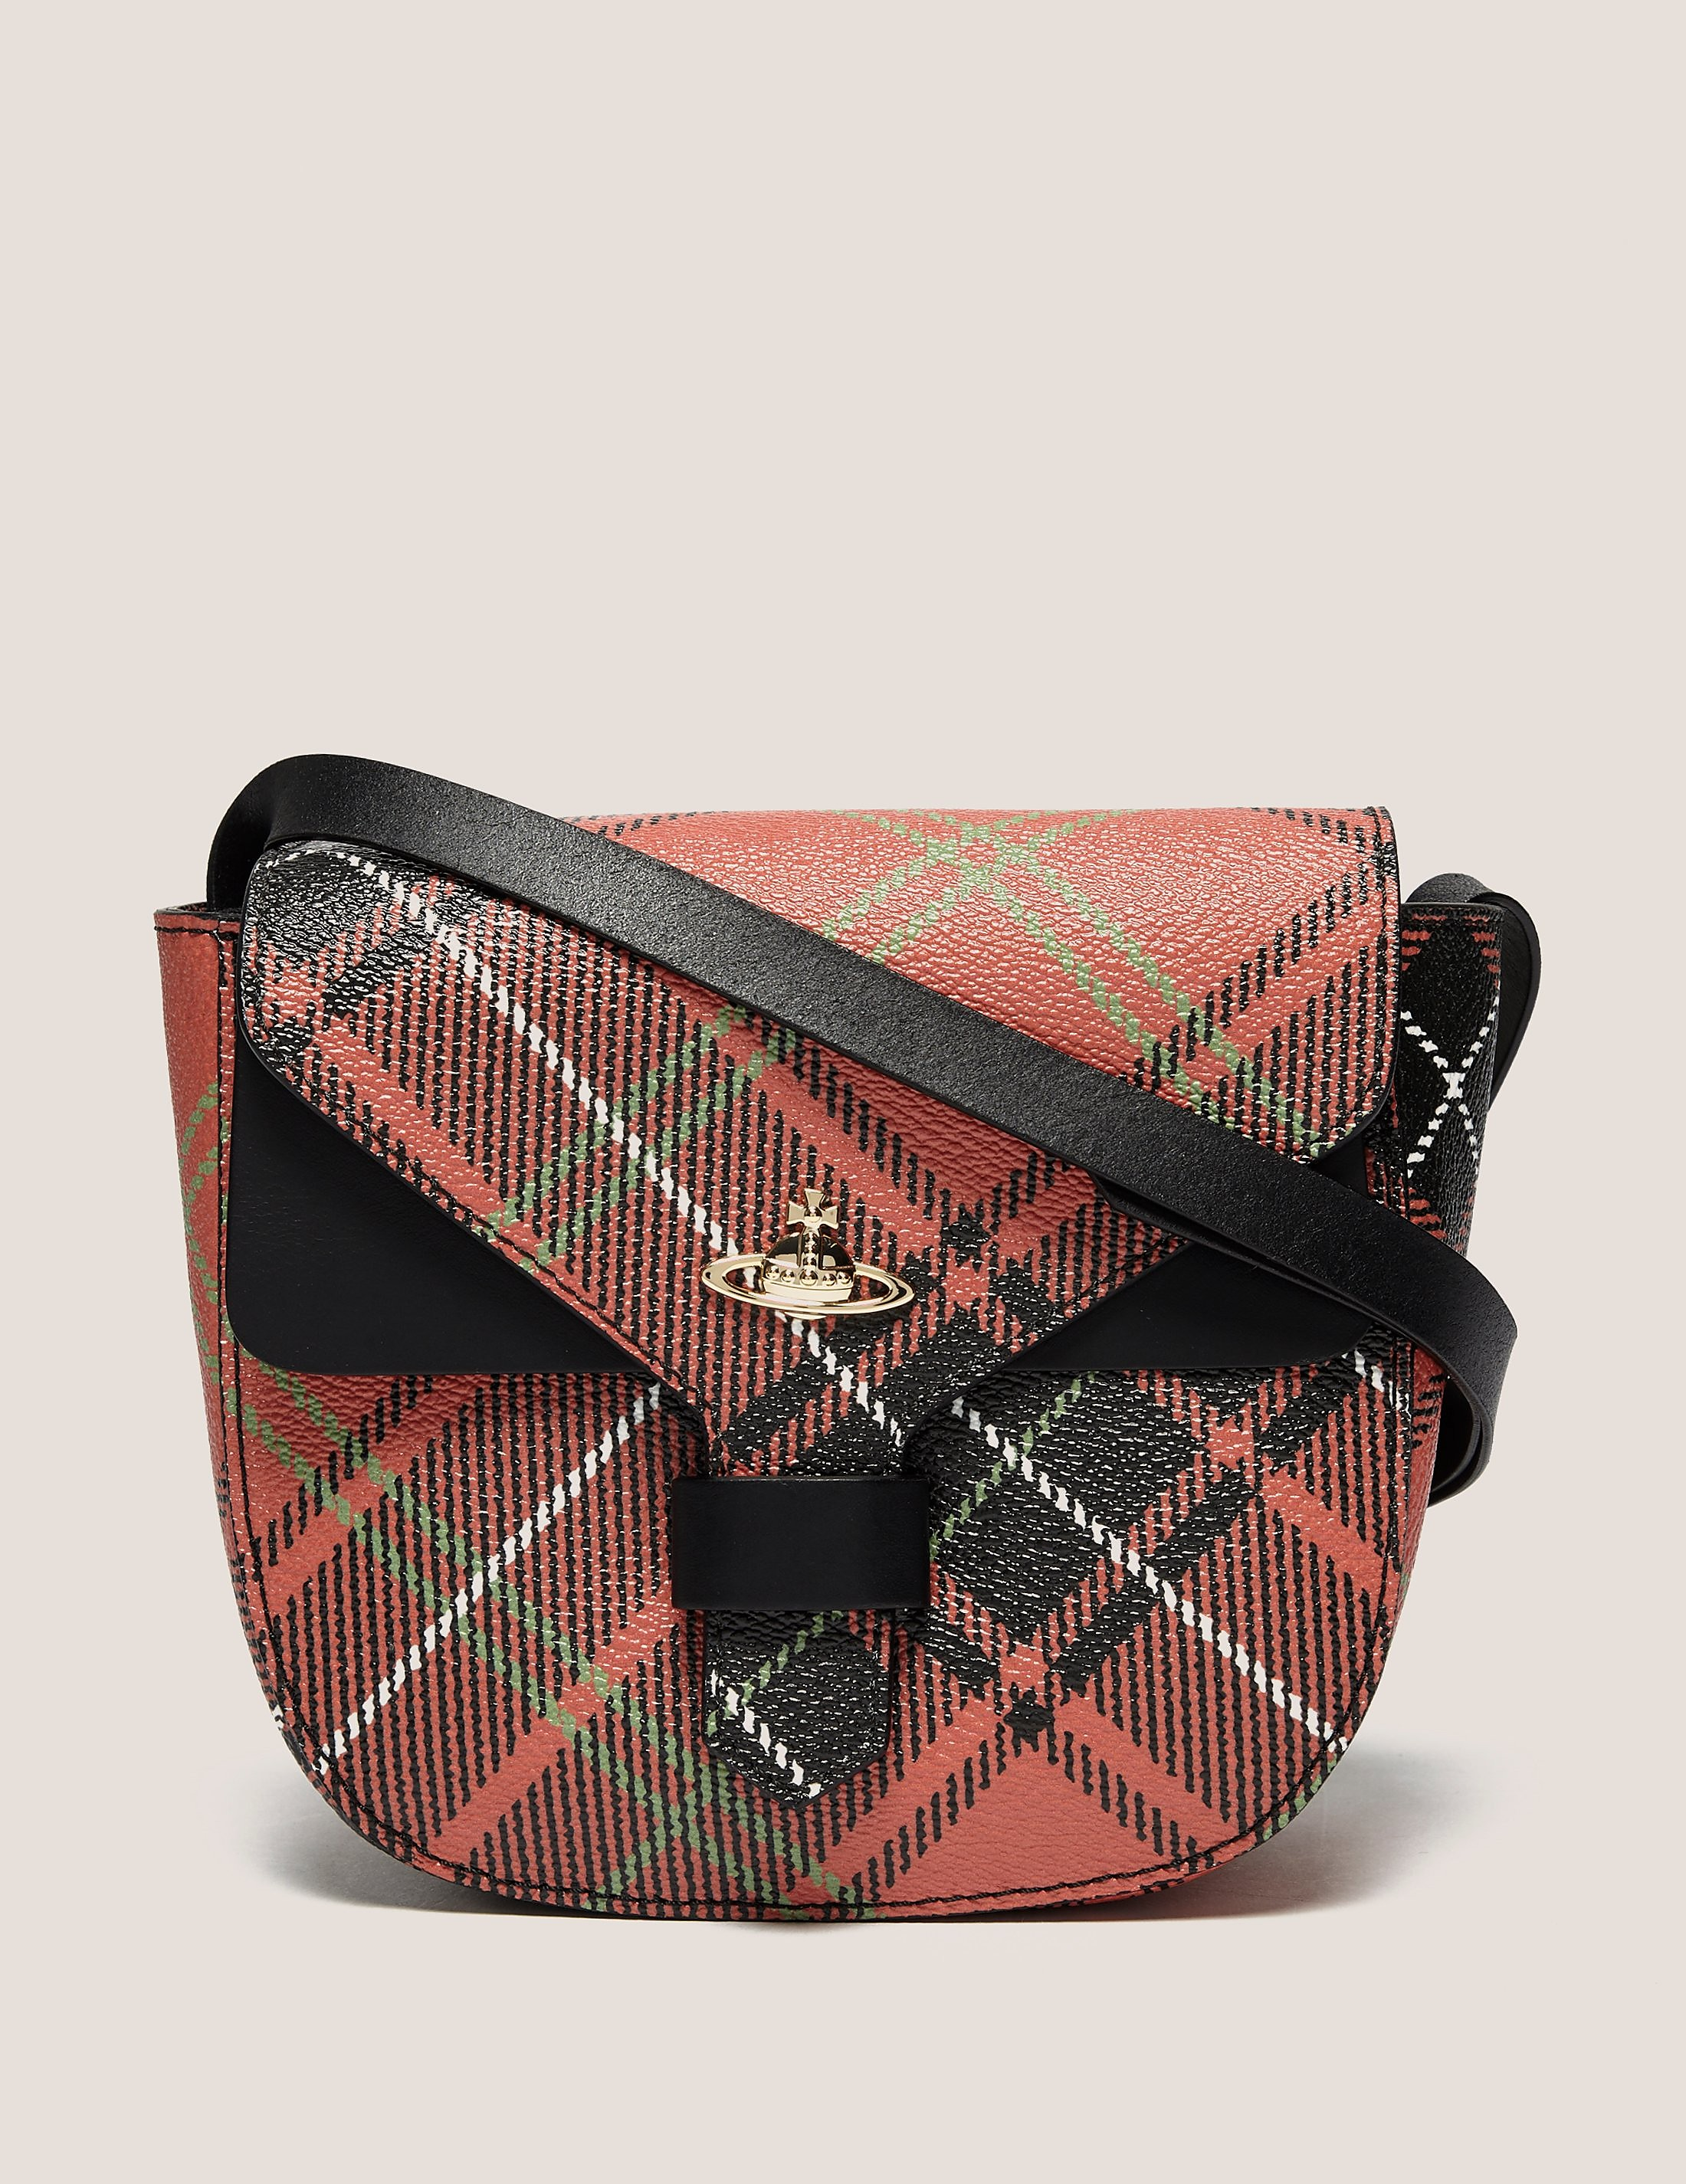 Vivienne Westwood Edinburgh Crossbody Bag - Online Exclusive